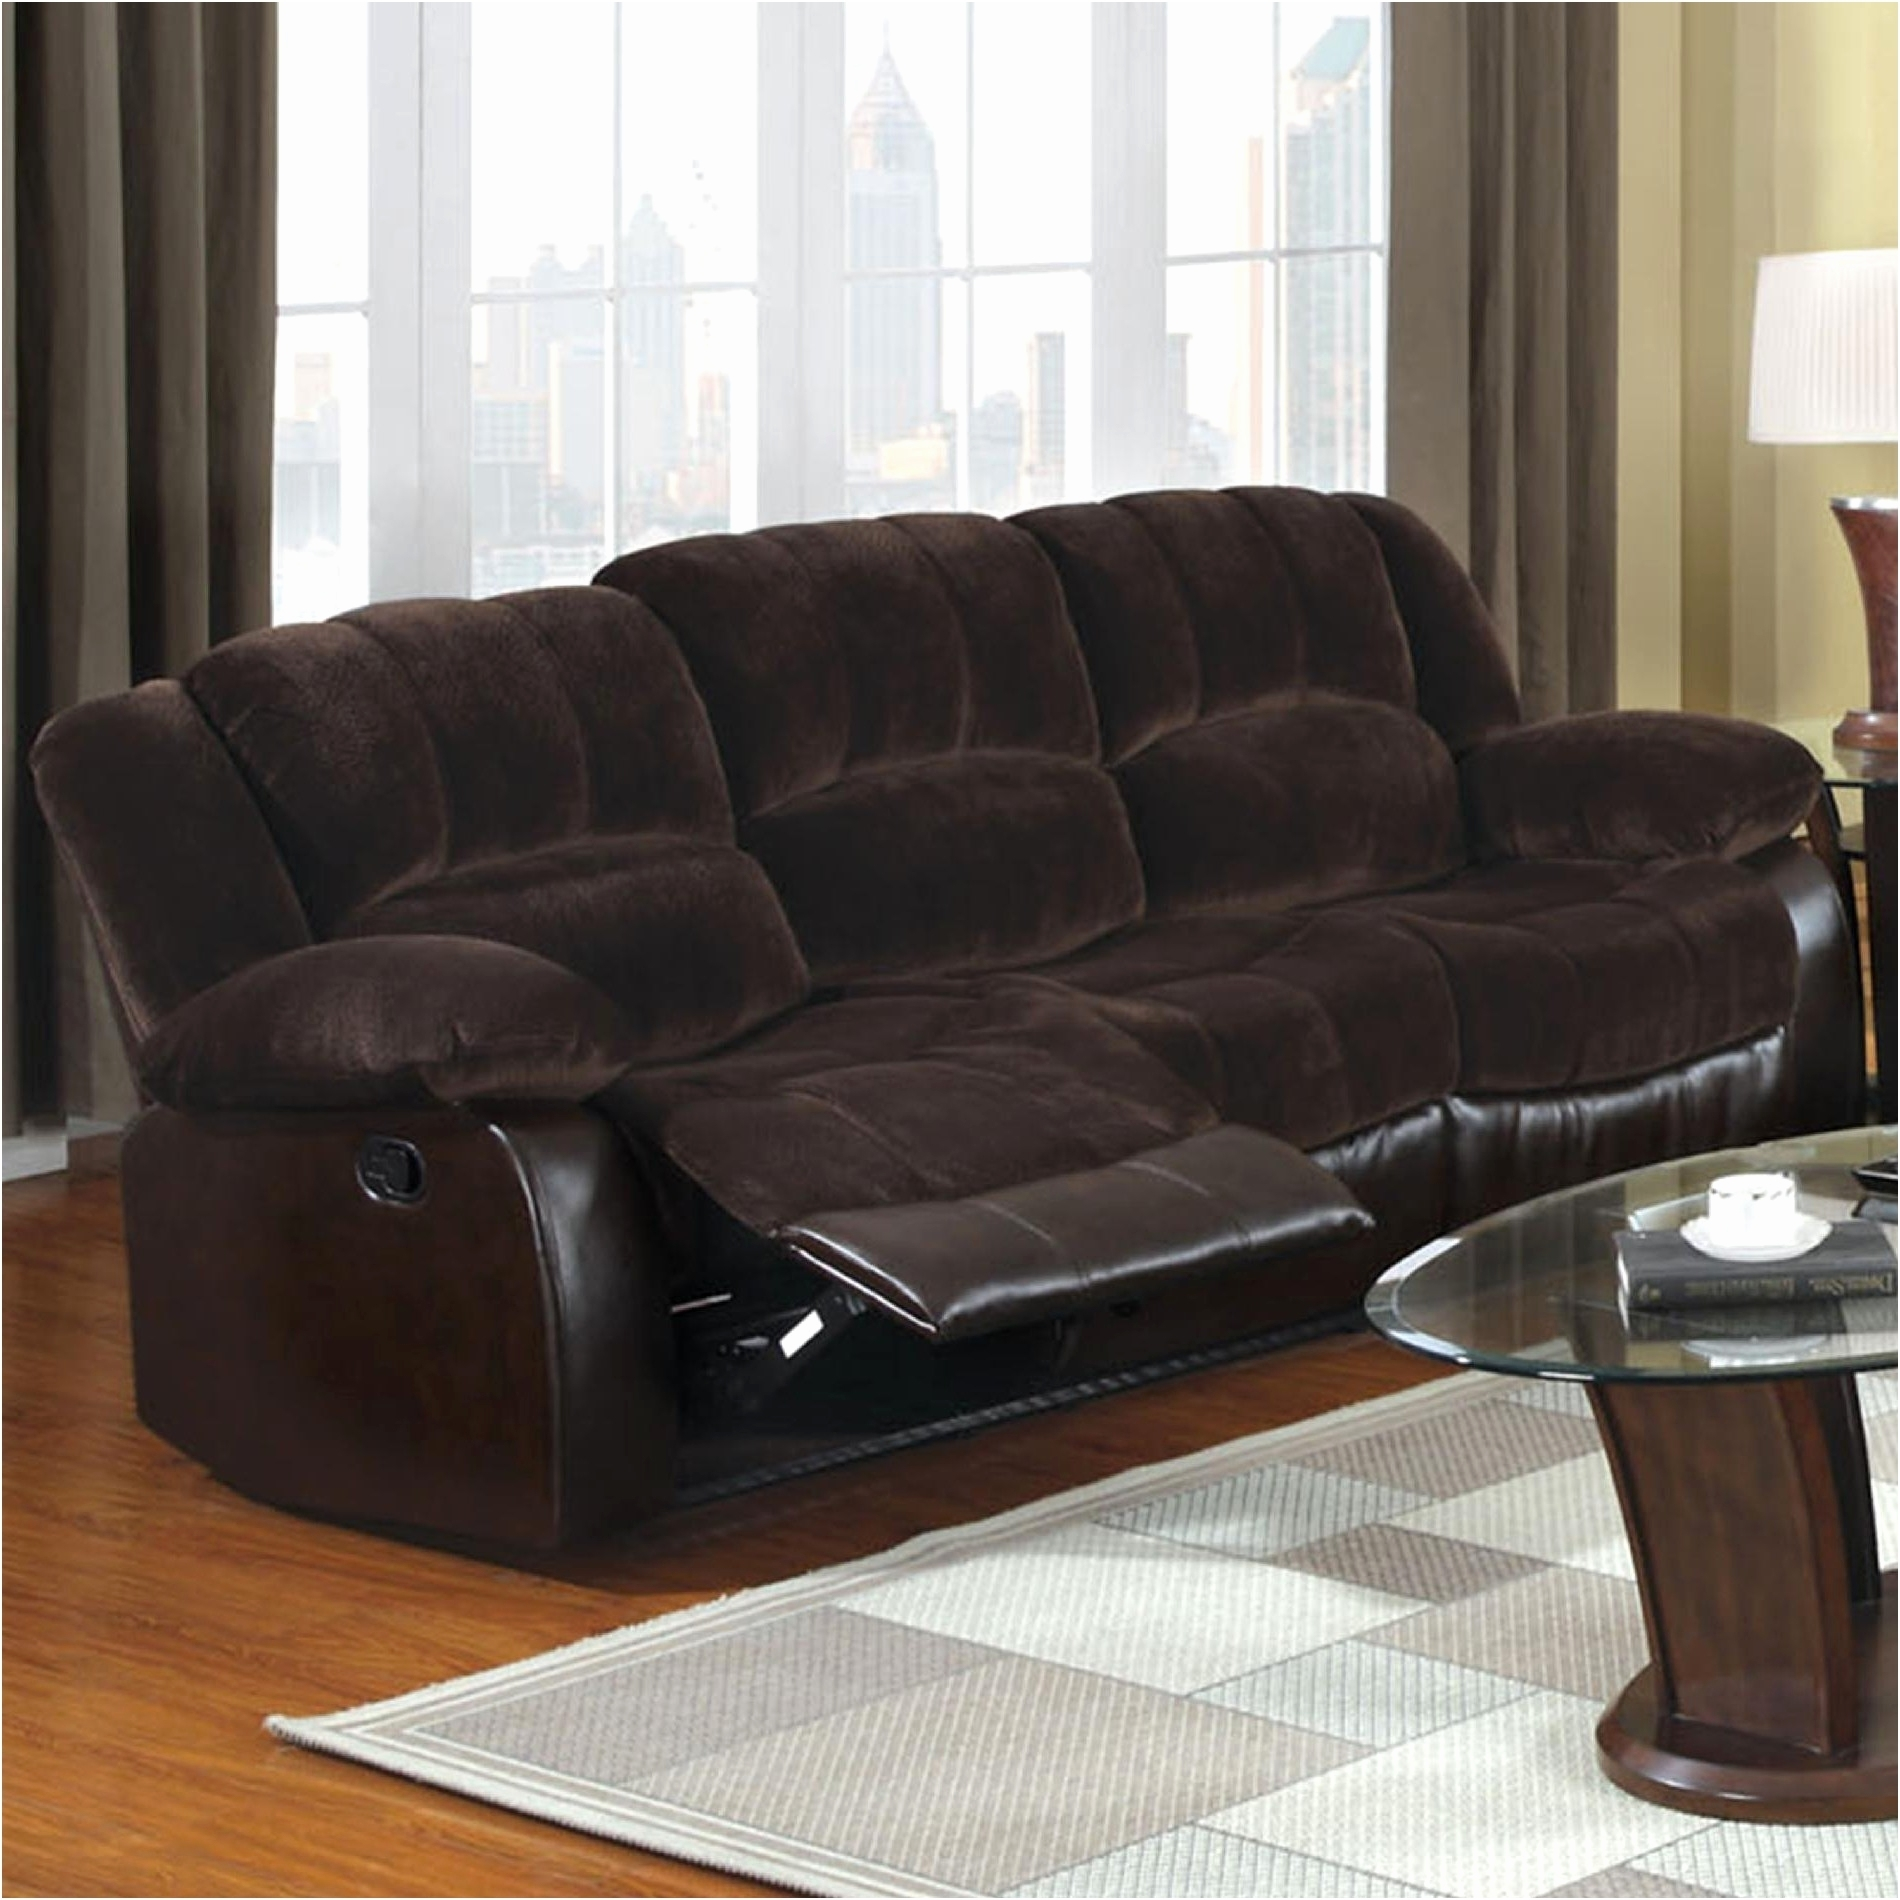 leather sofa bed sears sofas anticrisis ofertas madrid 2018 latest sectional at ideas